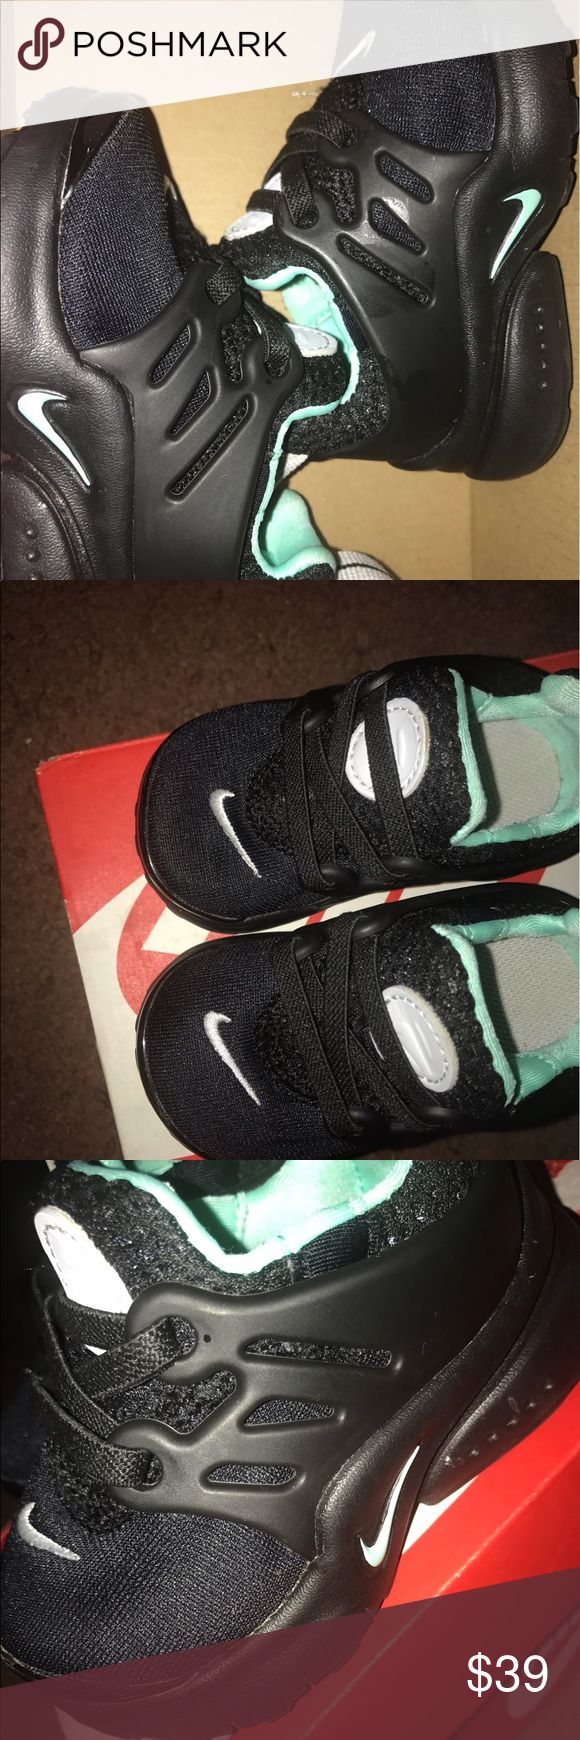 Baby Nike Presto Sneakers All black baby Nike Presto with real colored detail. Worn 2x. Very cute and fashionable. Nike Shoes Sneakers